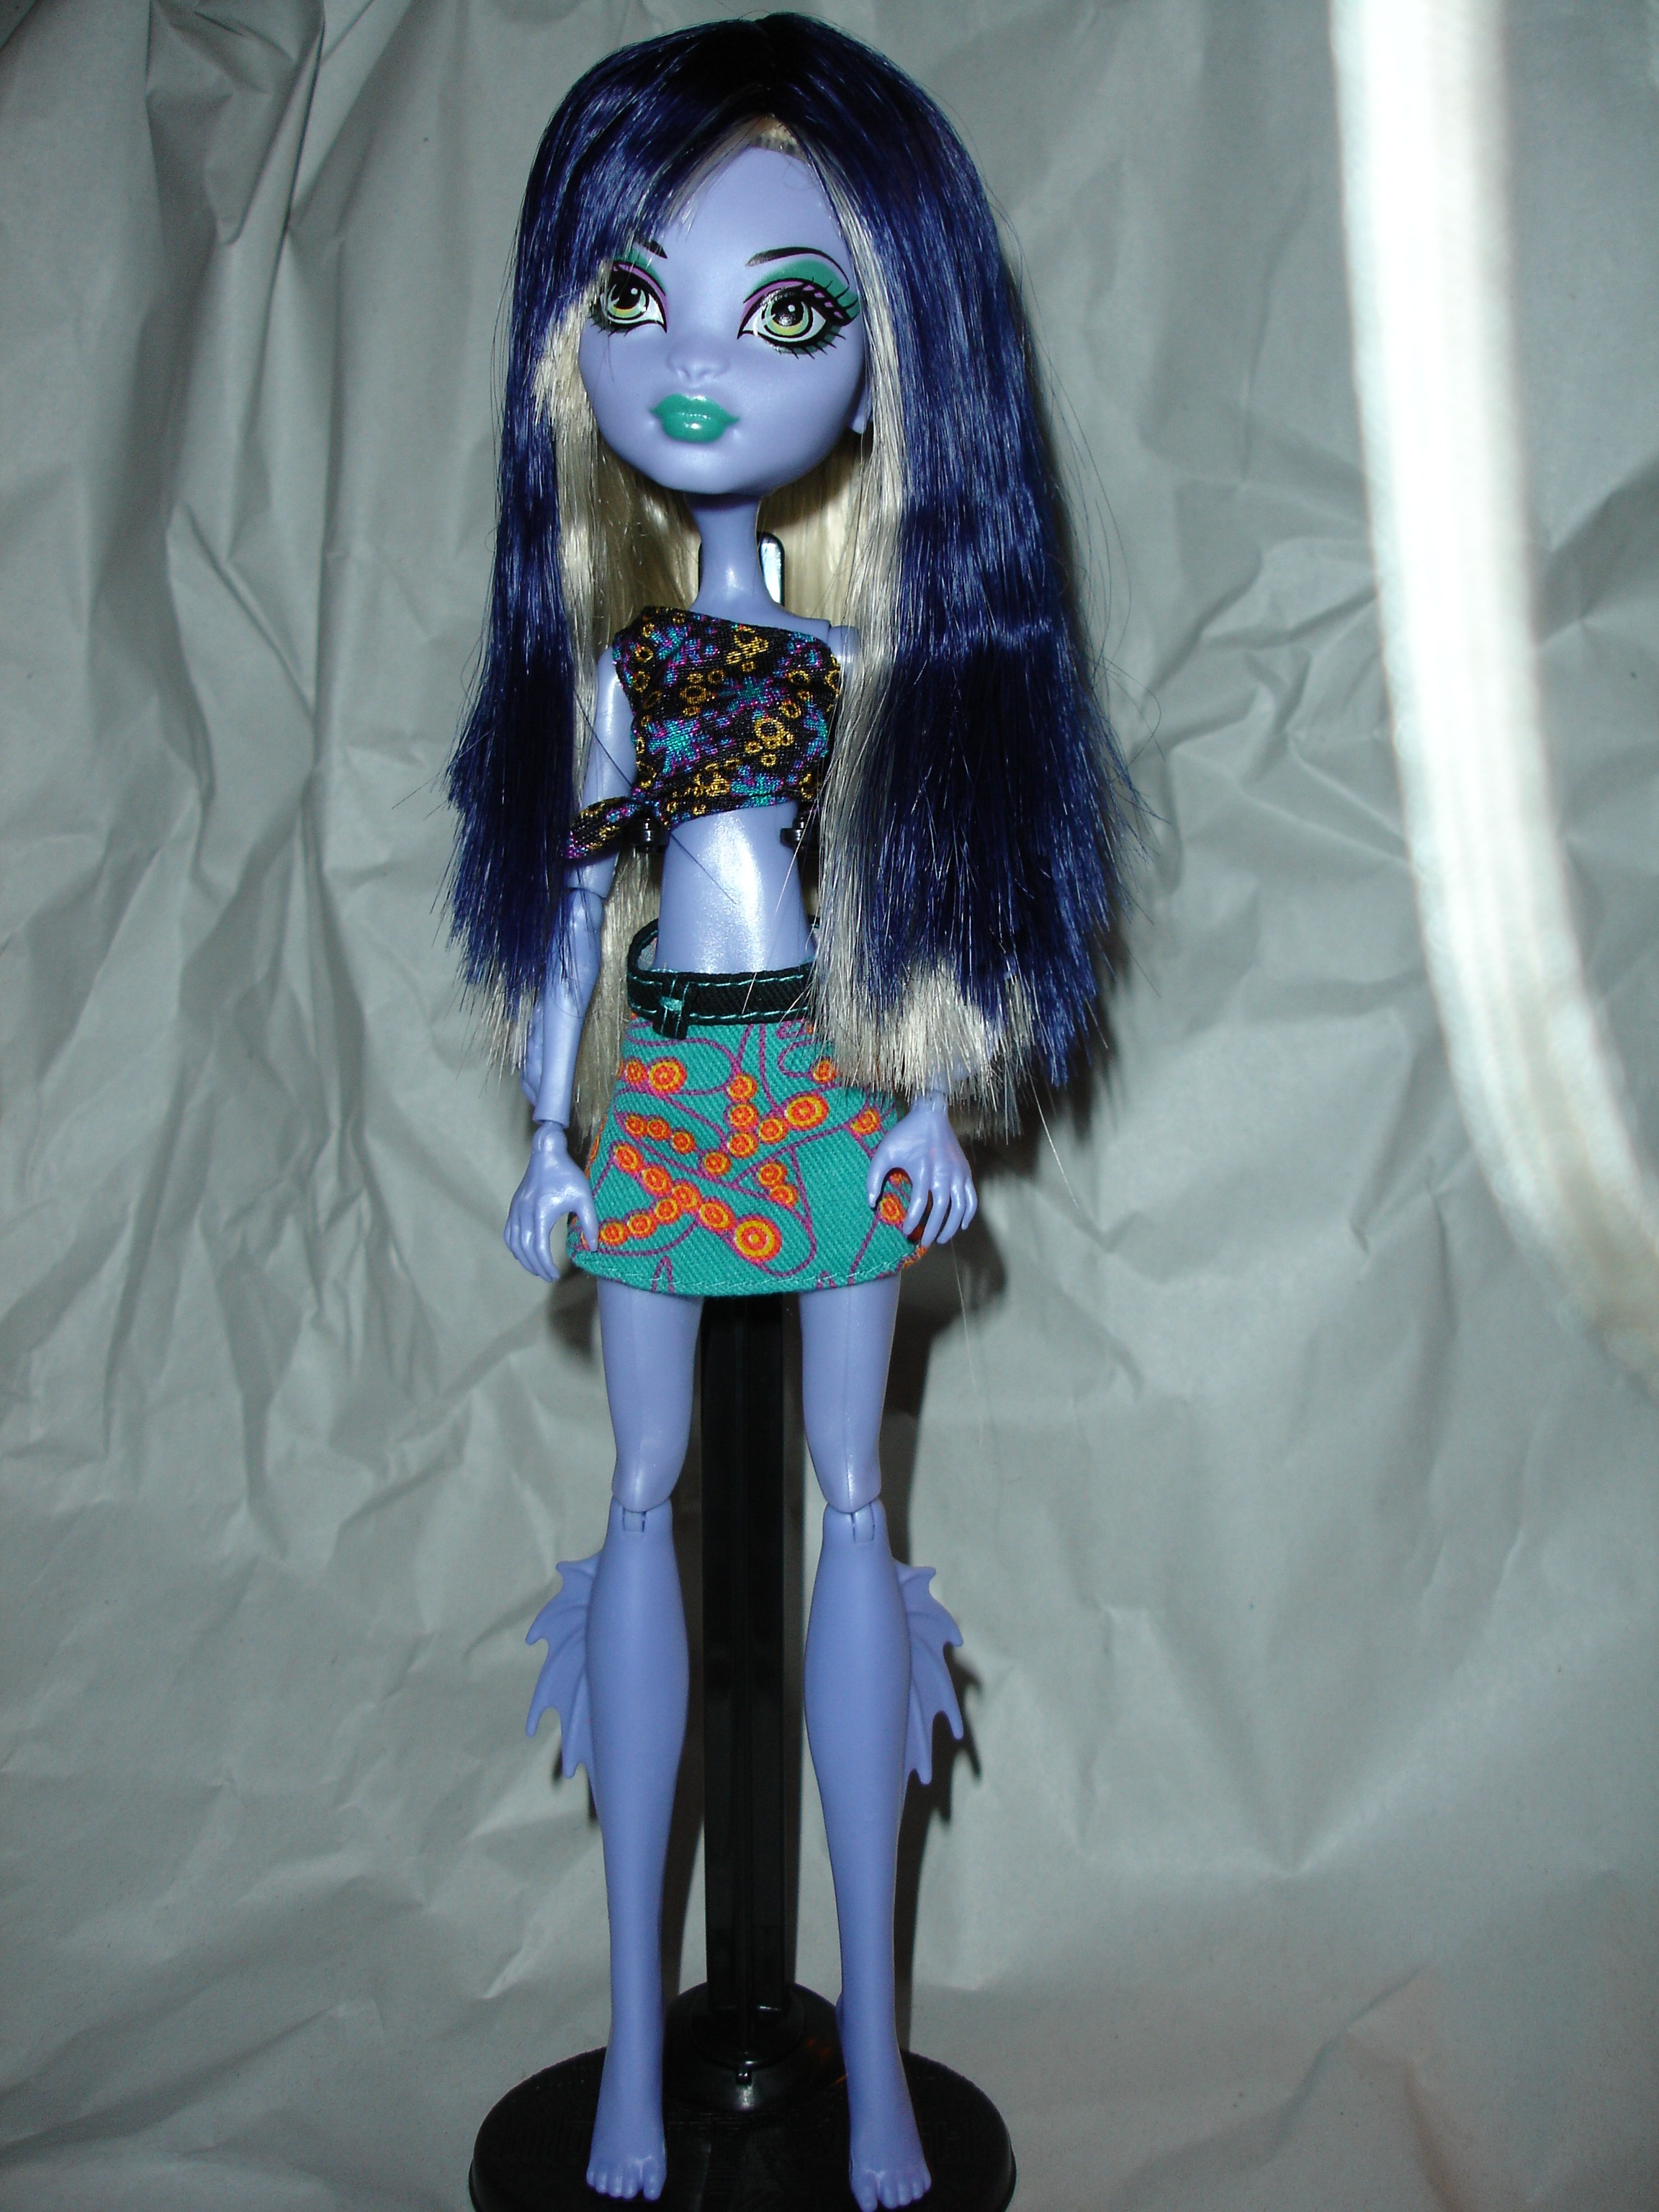 Why Is Monster High So Cool